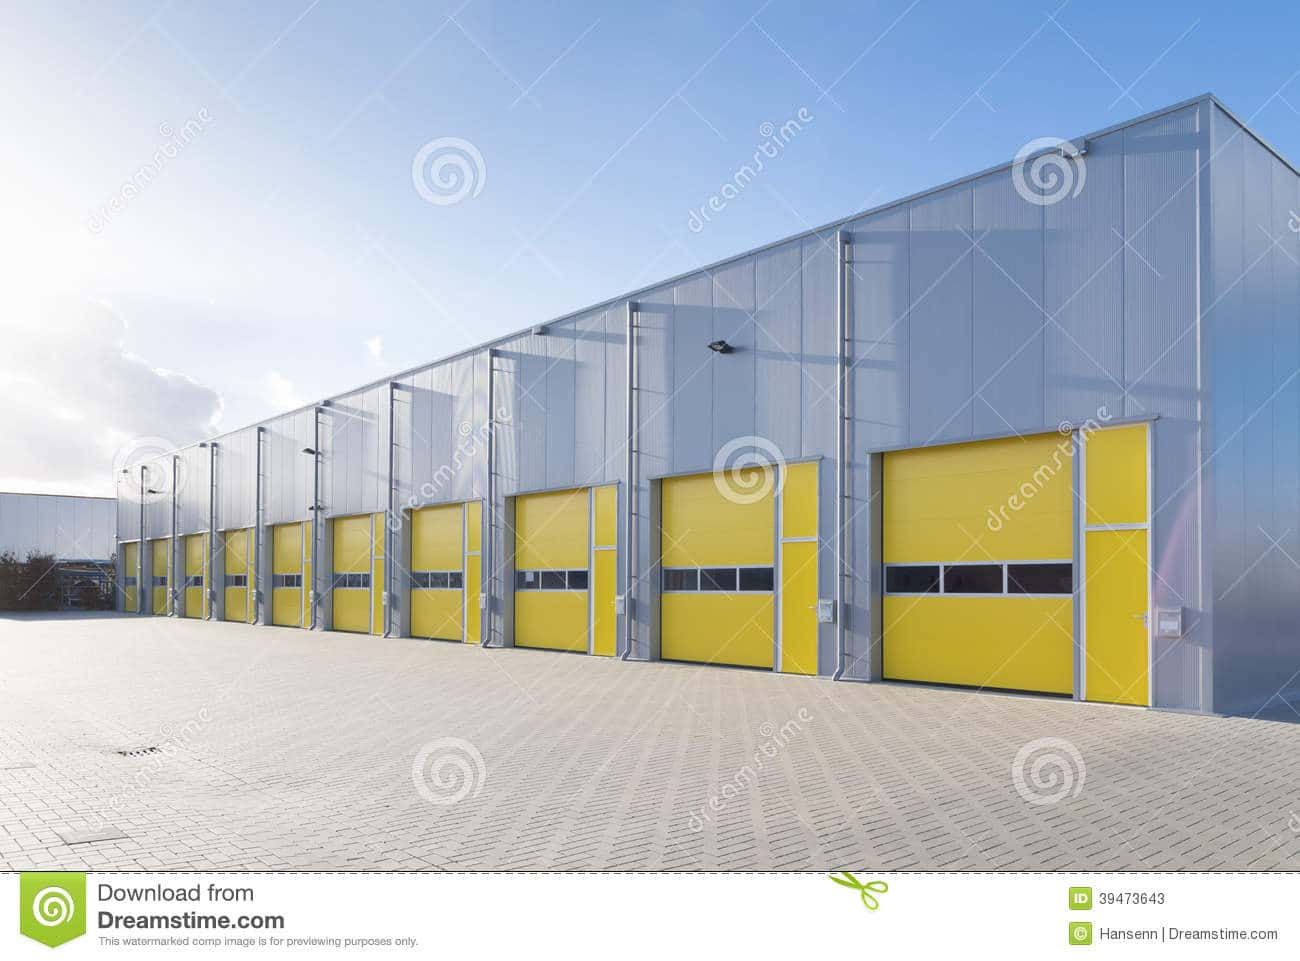 Commercial Warehouse Exterior Yellow Roller Doors 39473643 Future Buildings